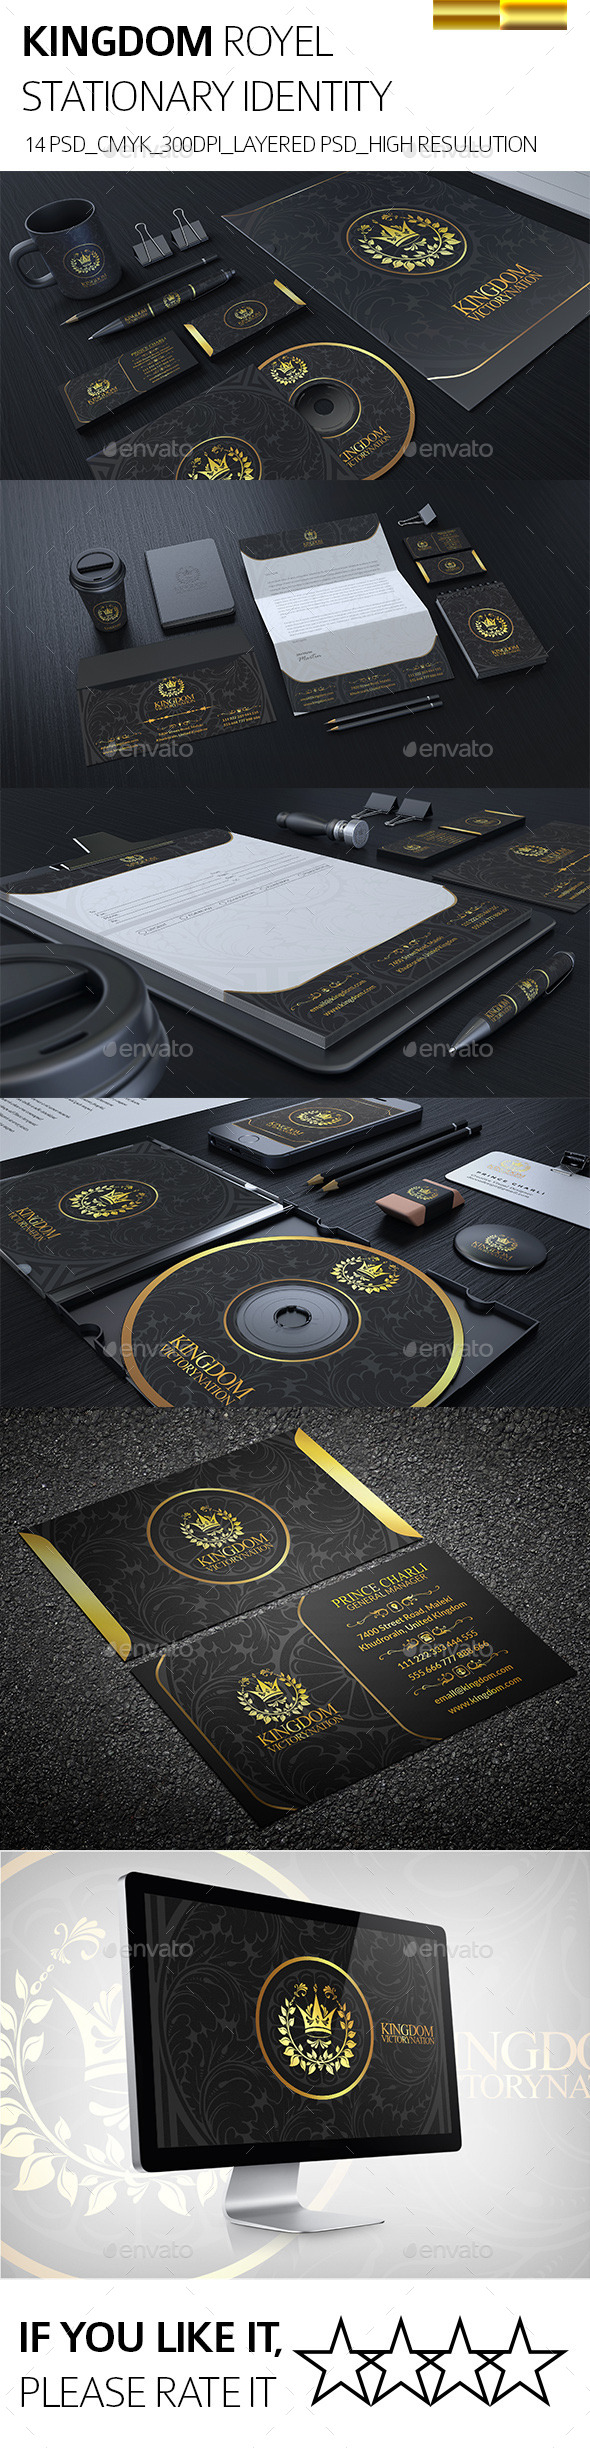 GraphicRiver Kingdom Statonary Identity 8955964